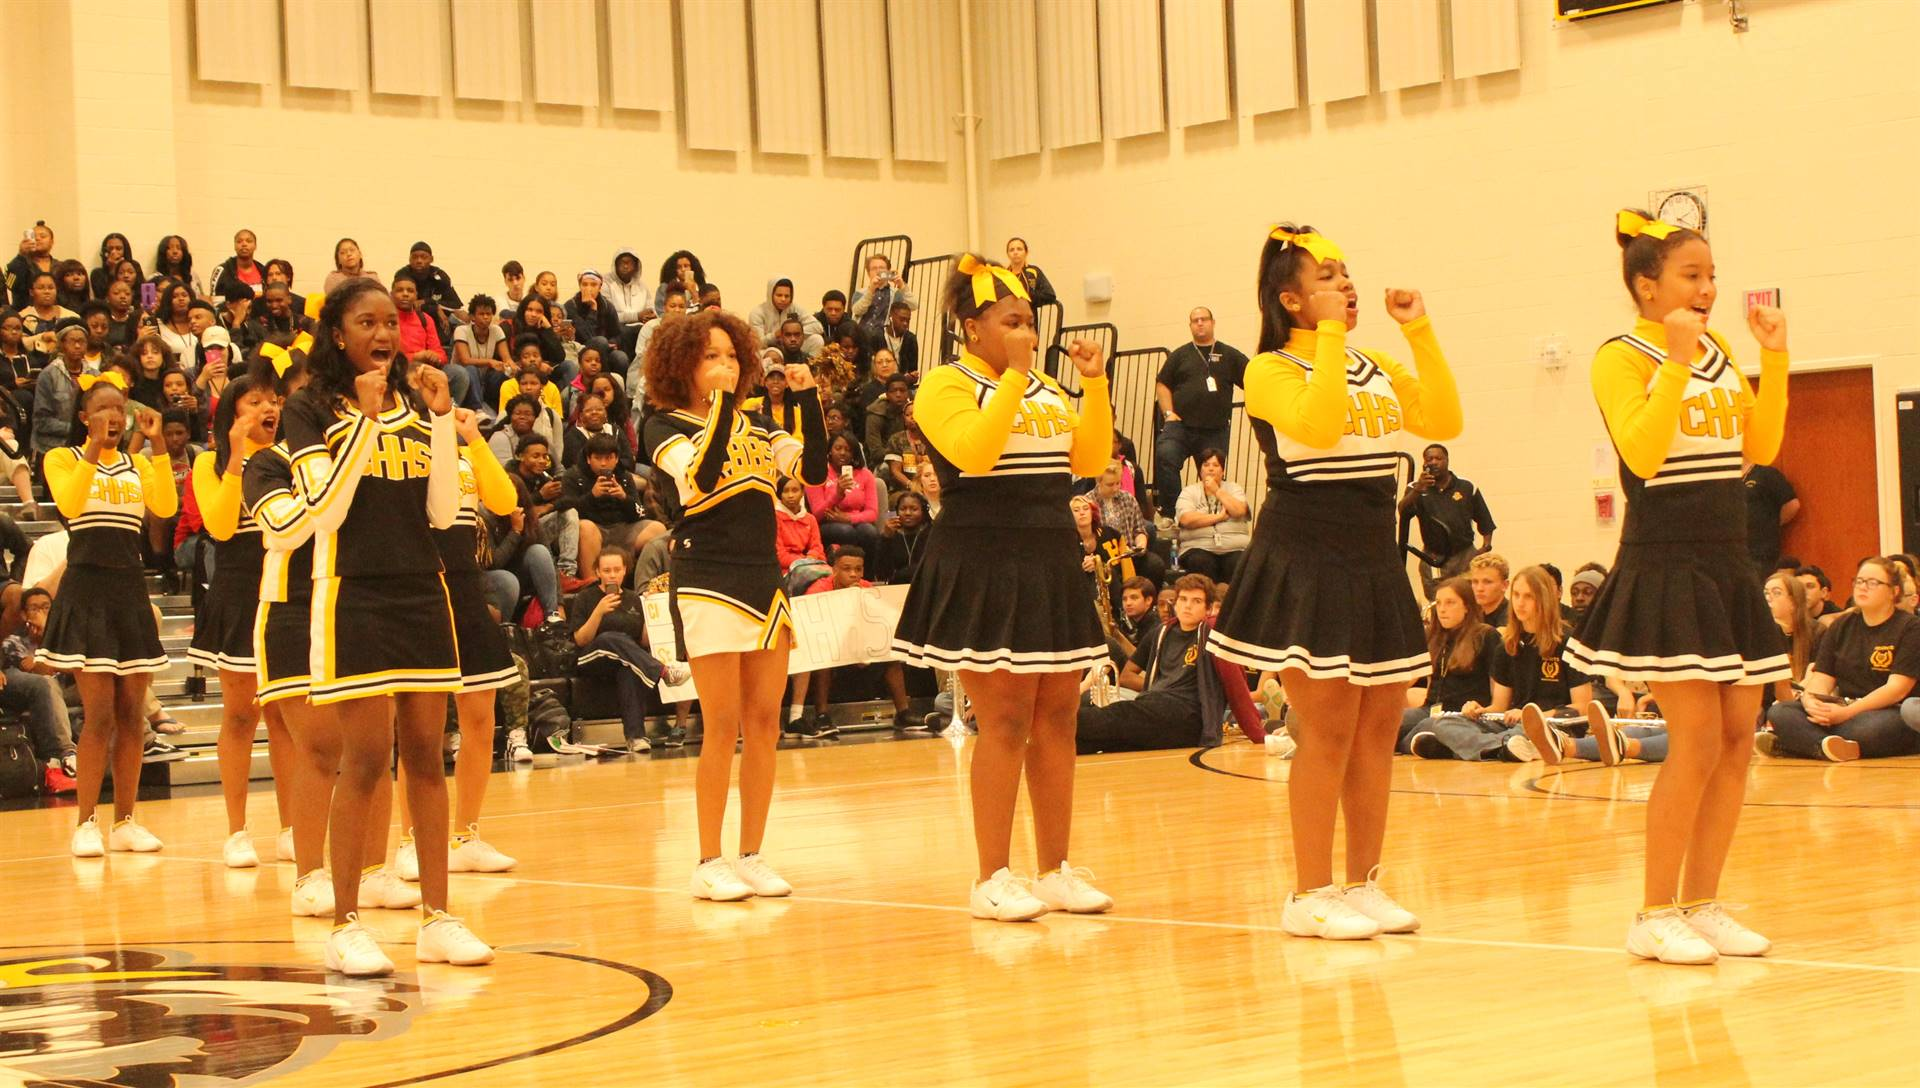 Cheerleaders at the Pep Rally